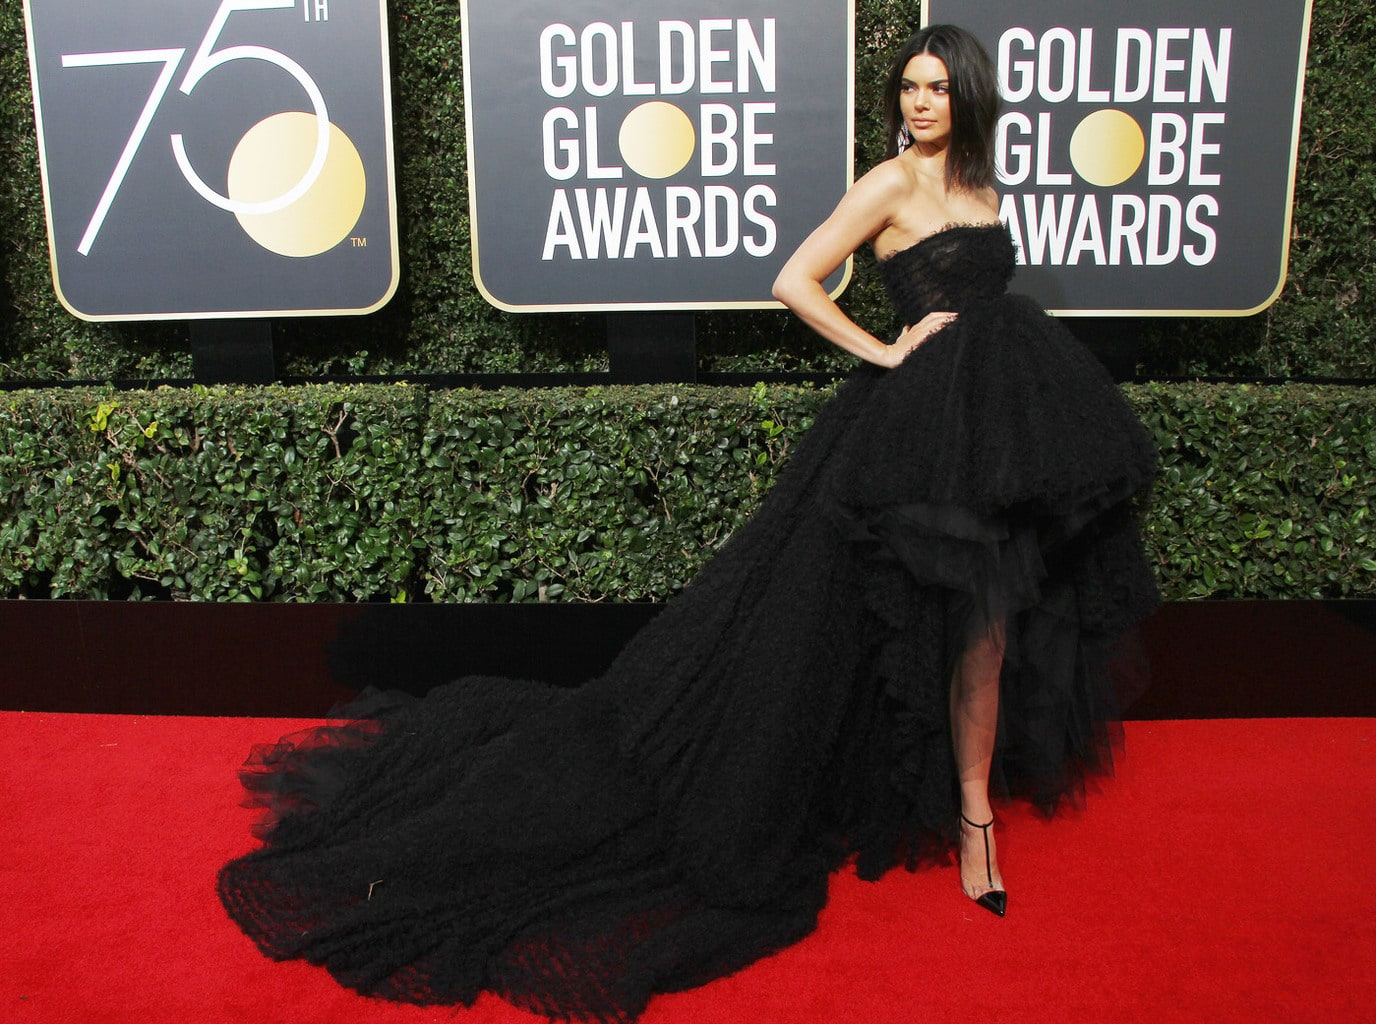 Kendall Jenner in a black Giambattista Valli gown at the 2018 Golden Globe awards